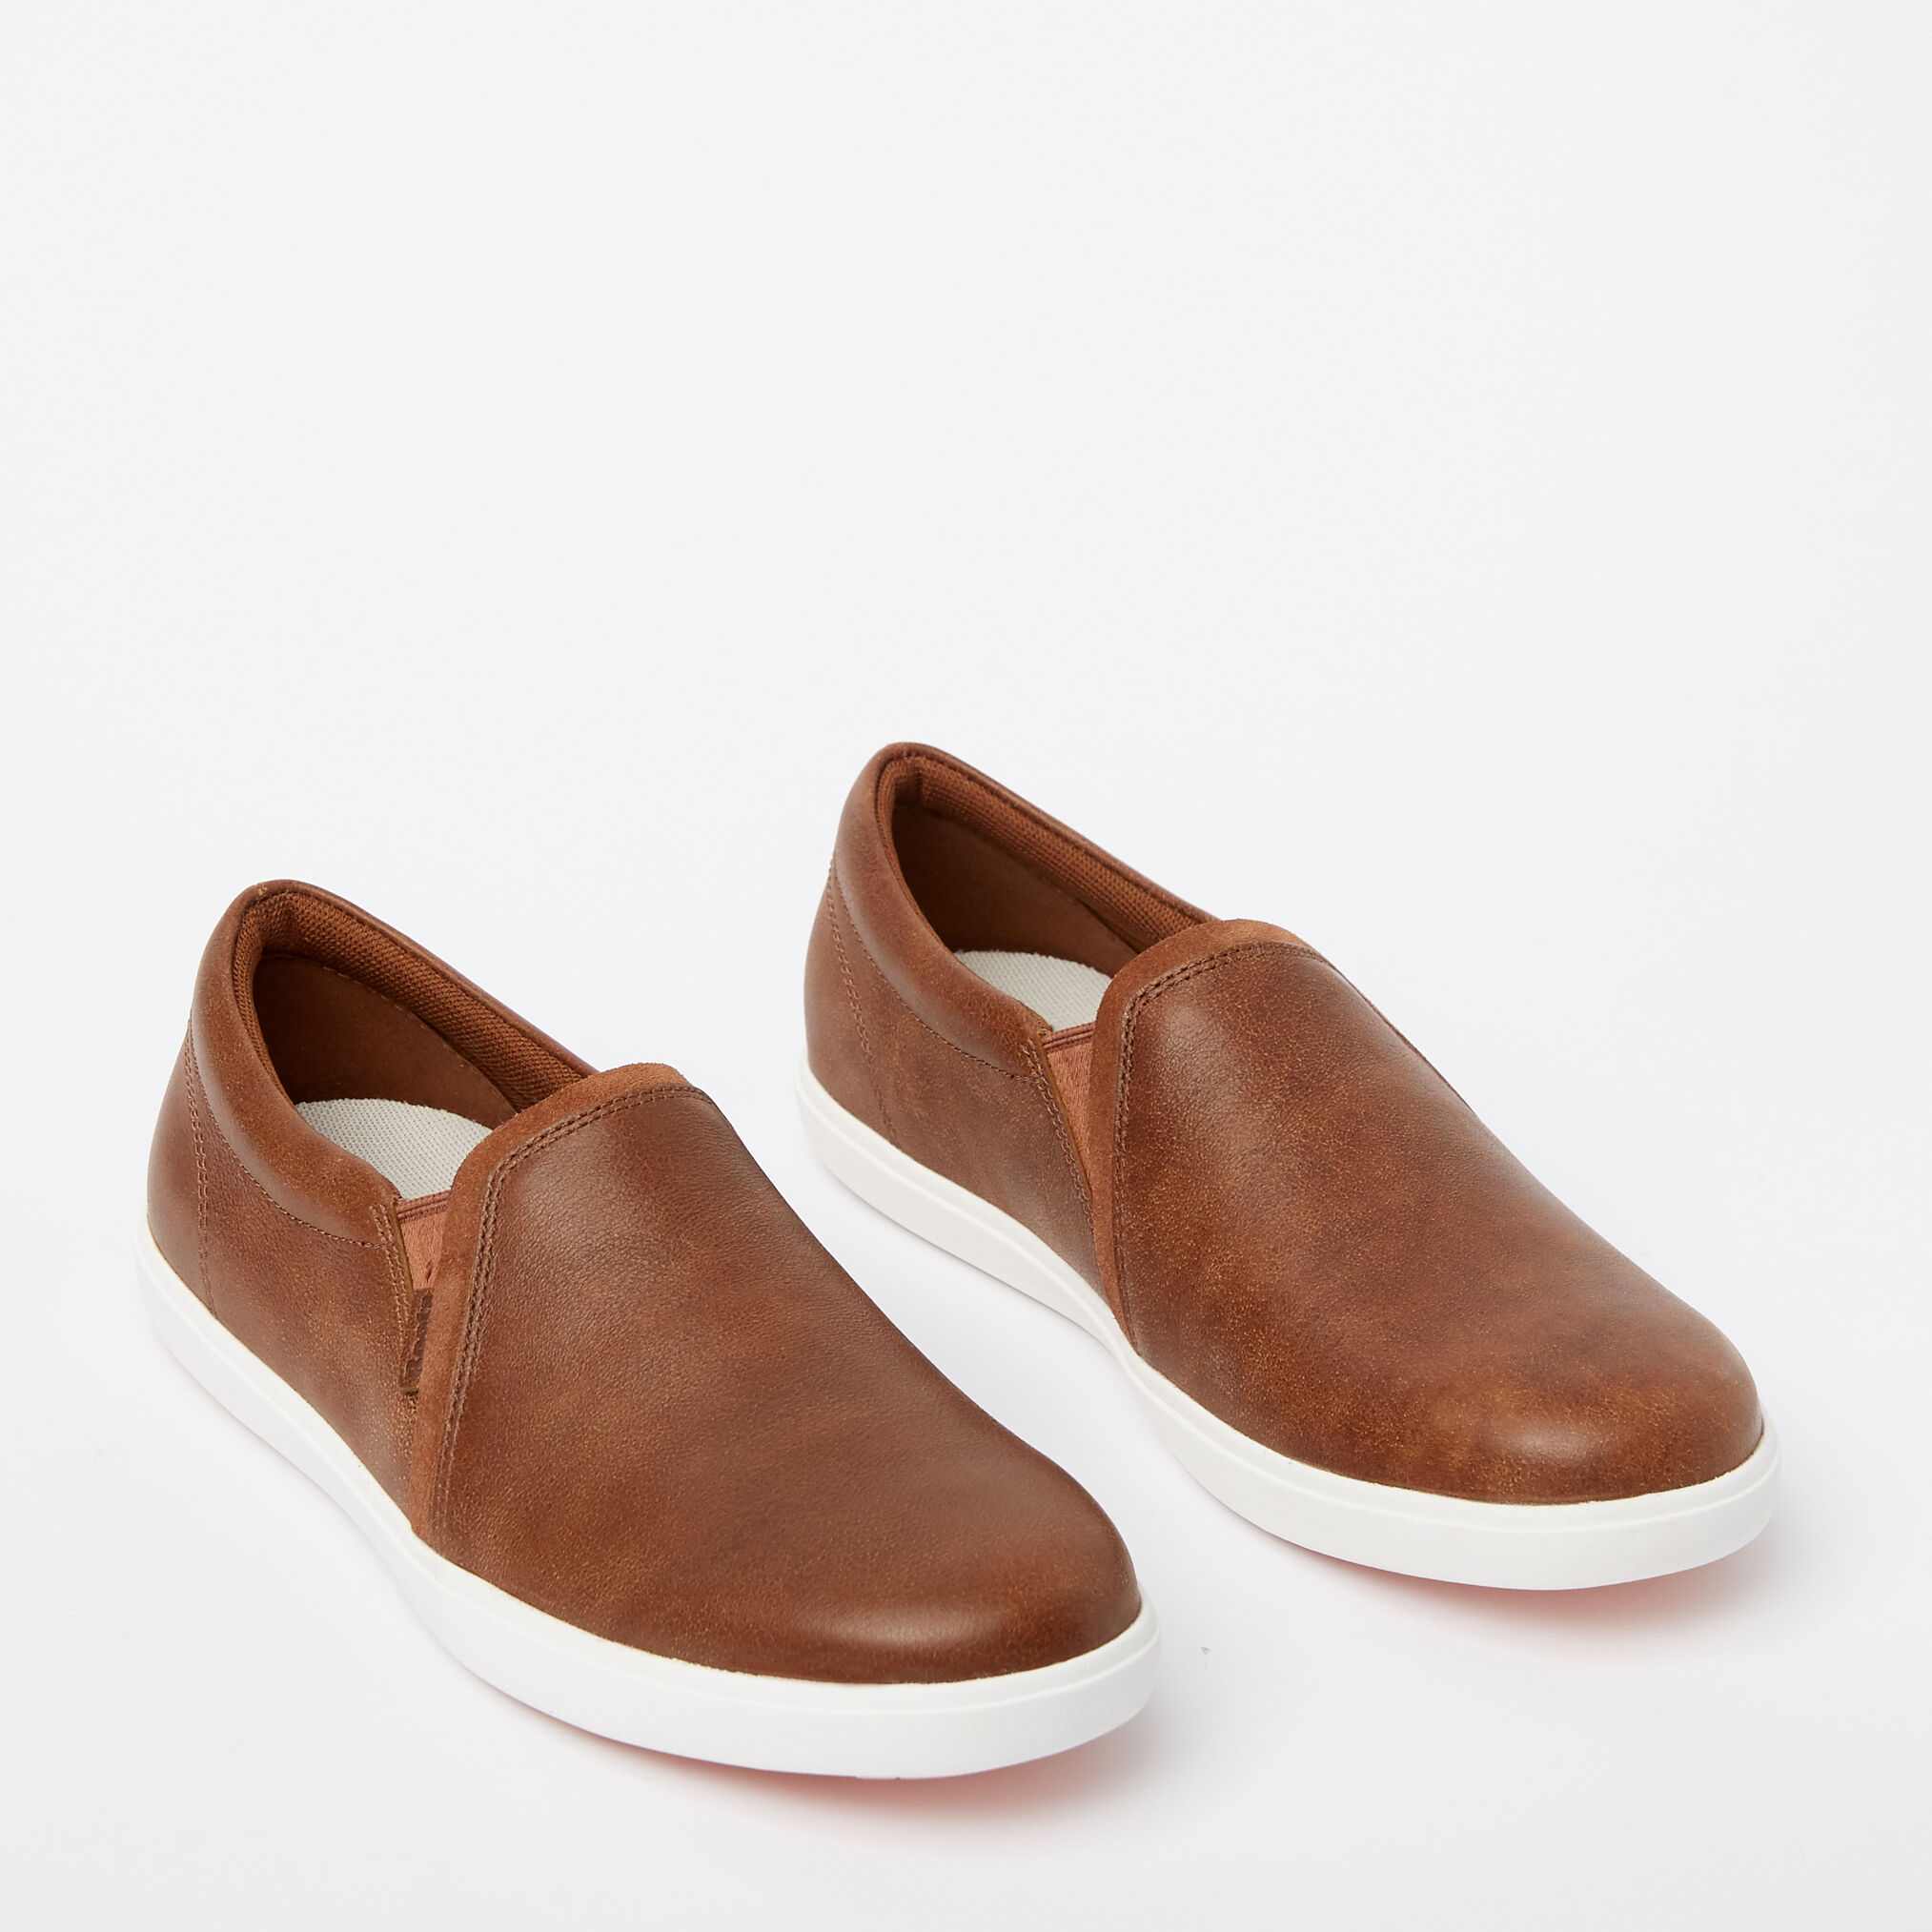 Brown Leather Slip On Shoes Womens